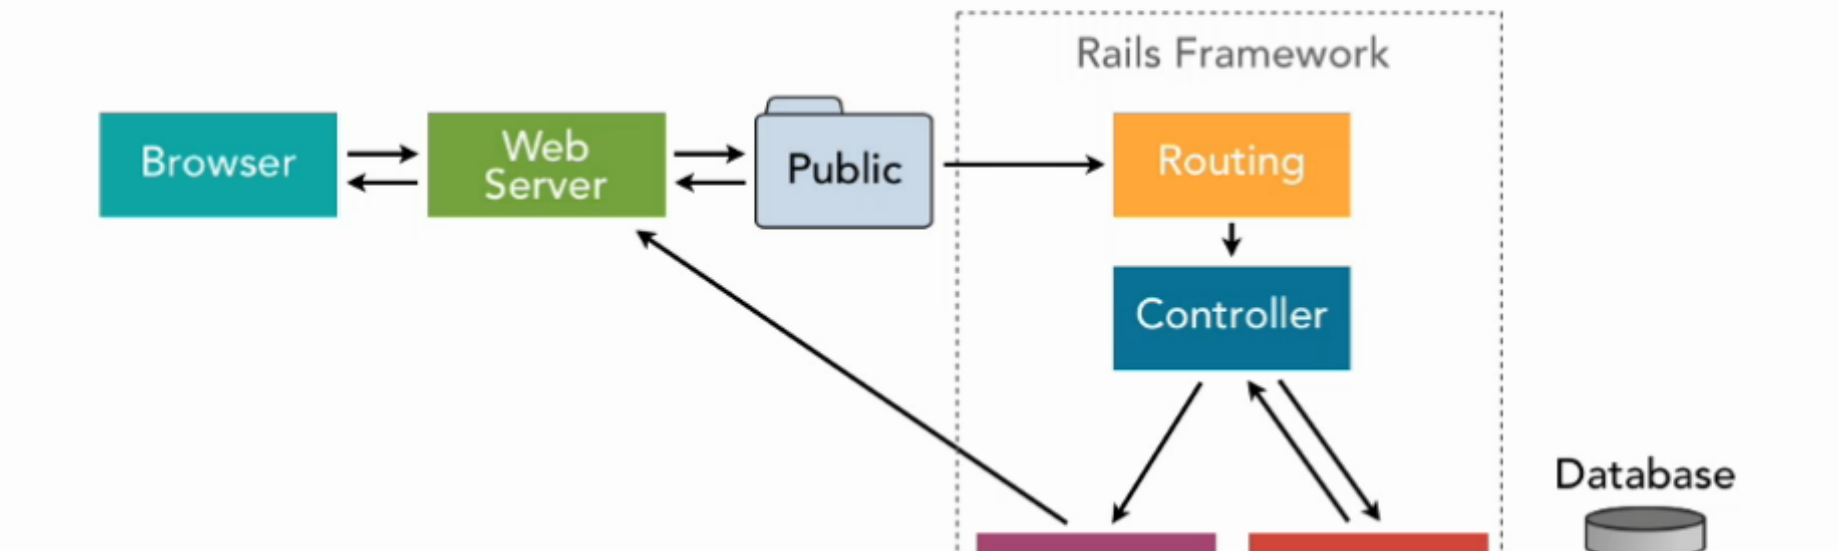 Ruby on Rails: HTTP, MVC and Routes - The Renaissance